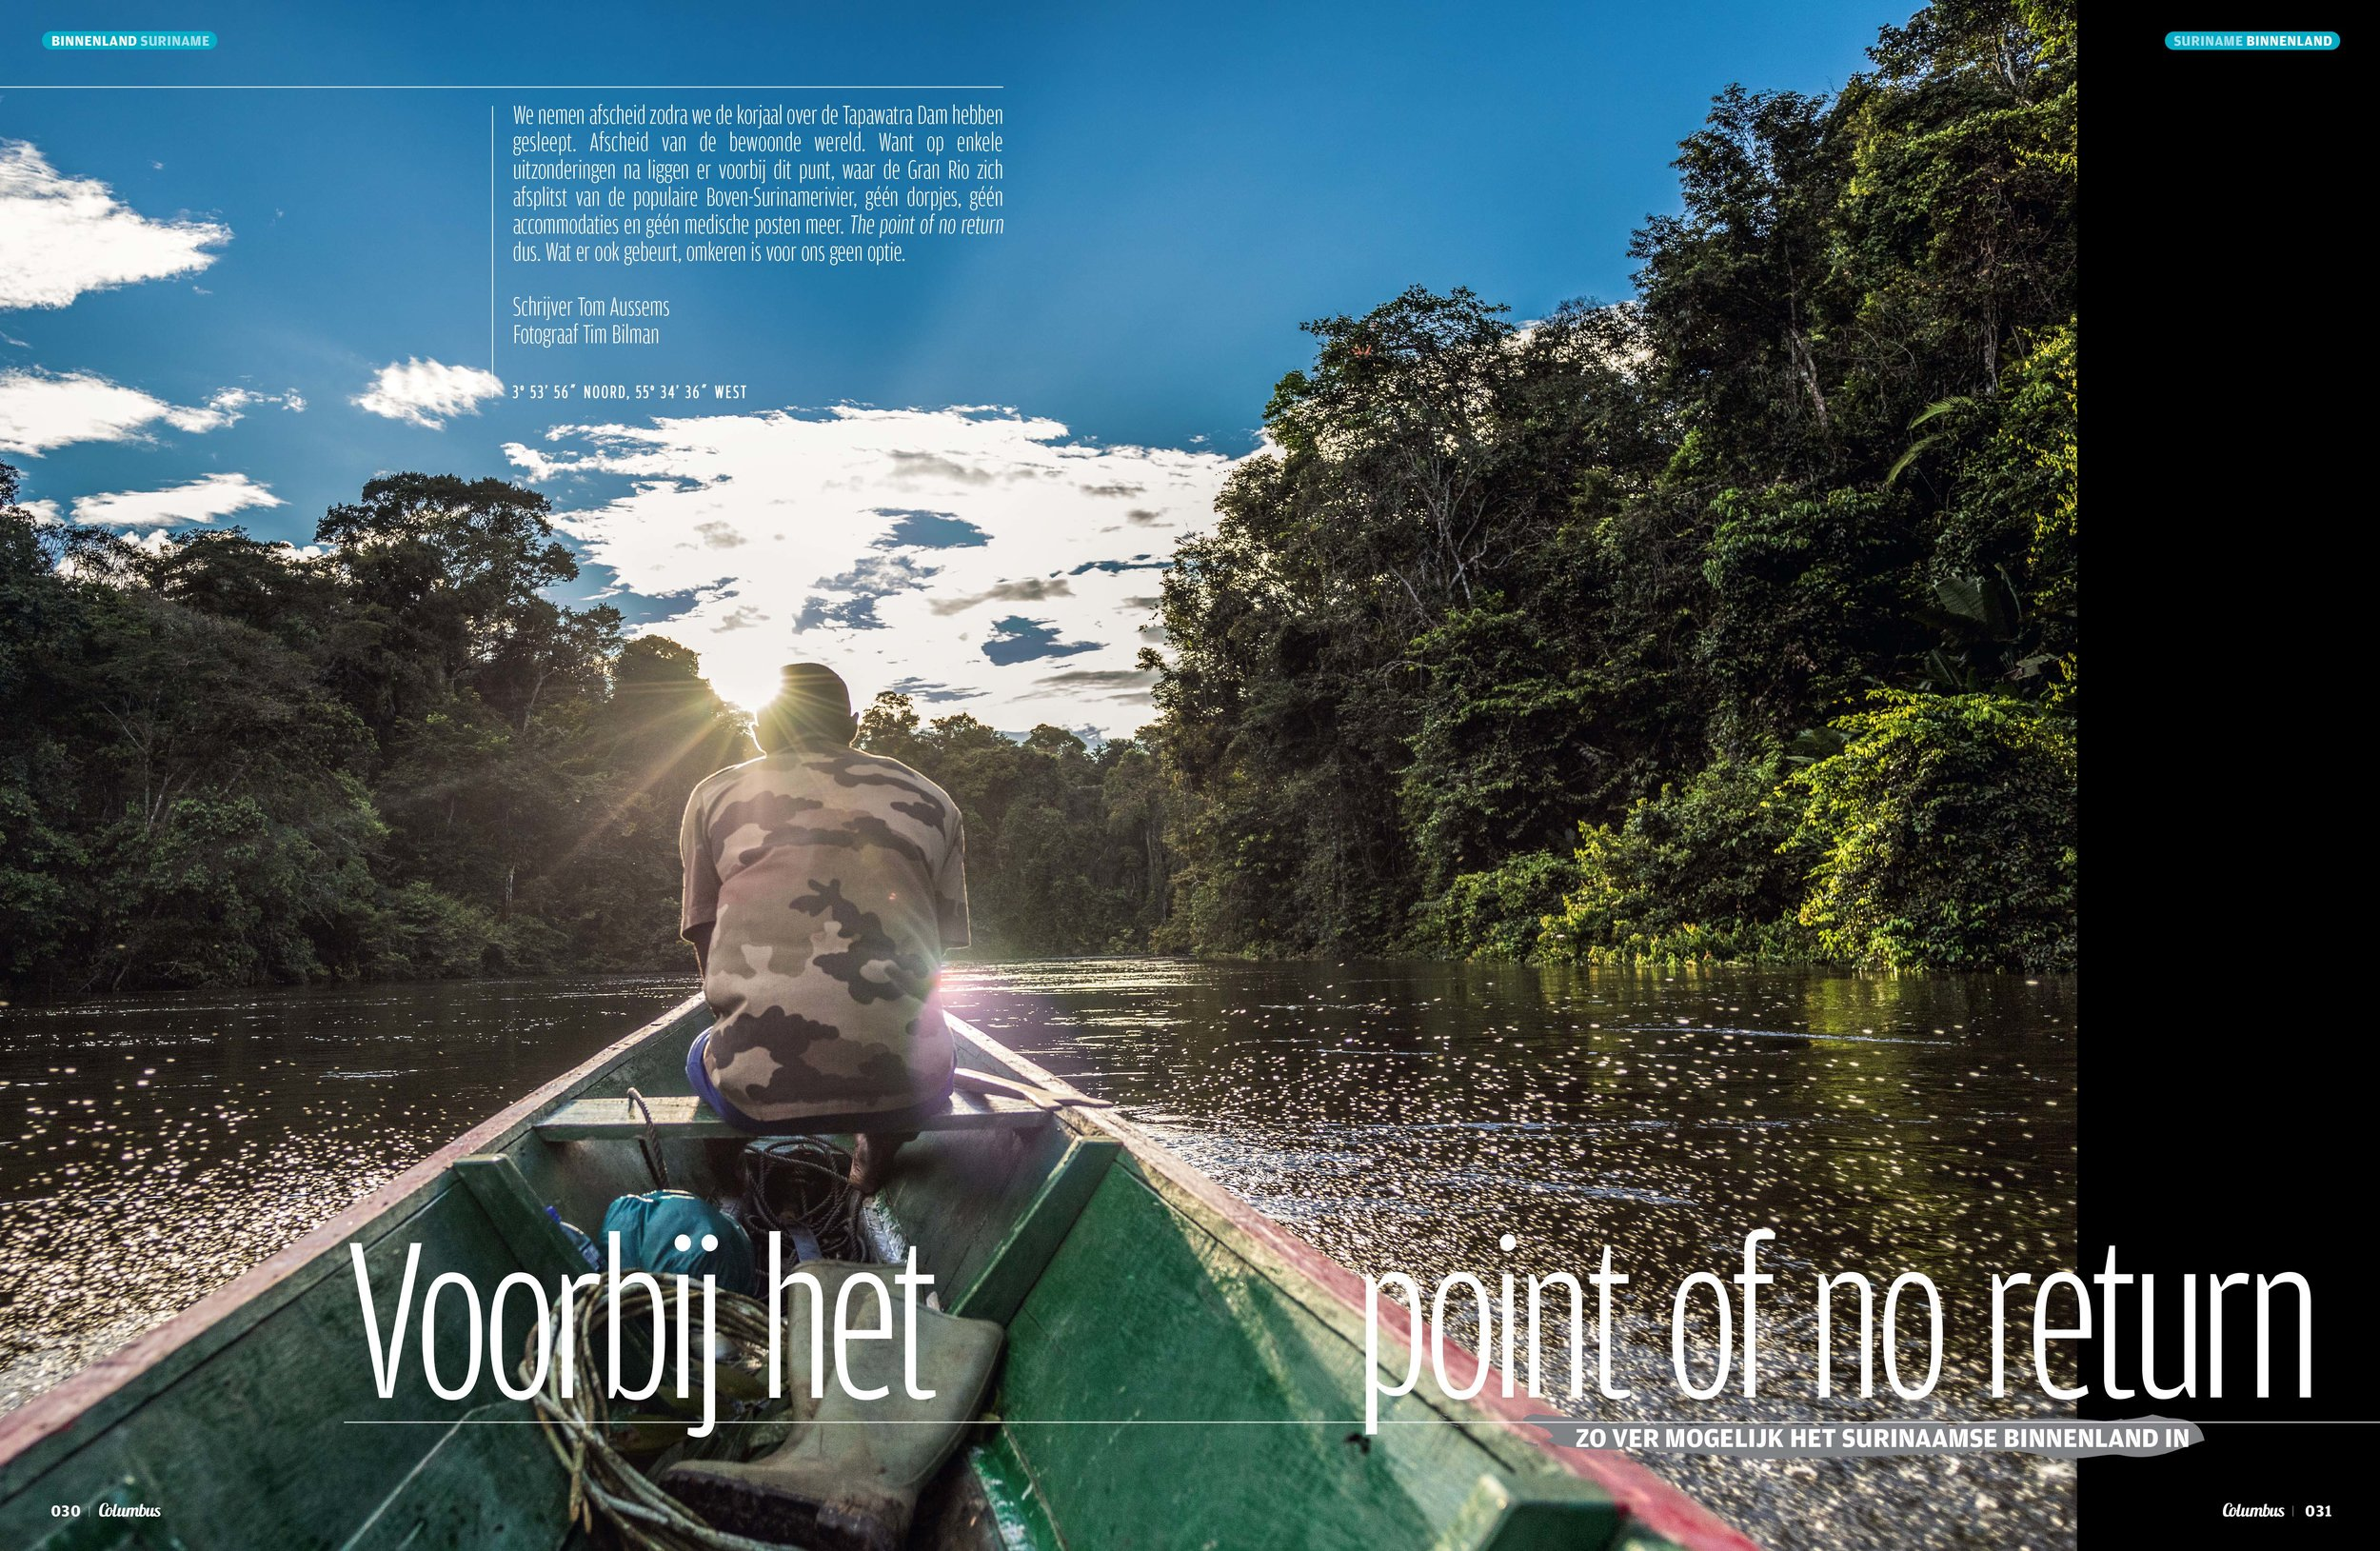 Surinam - For the dutch travel magazine Columbus Travel I spend some time deep in the Surinam Amazon. Together with journalist Tom Aussems I made a report about this amazing remote destination.